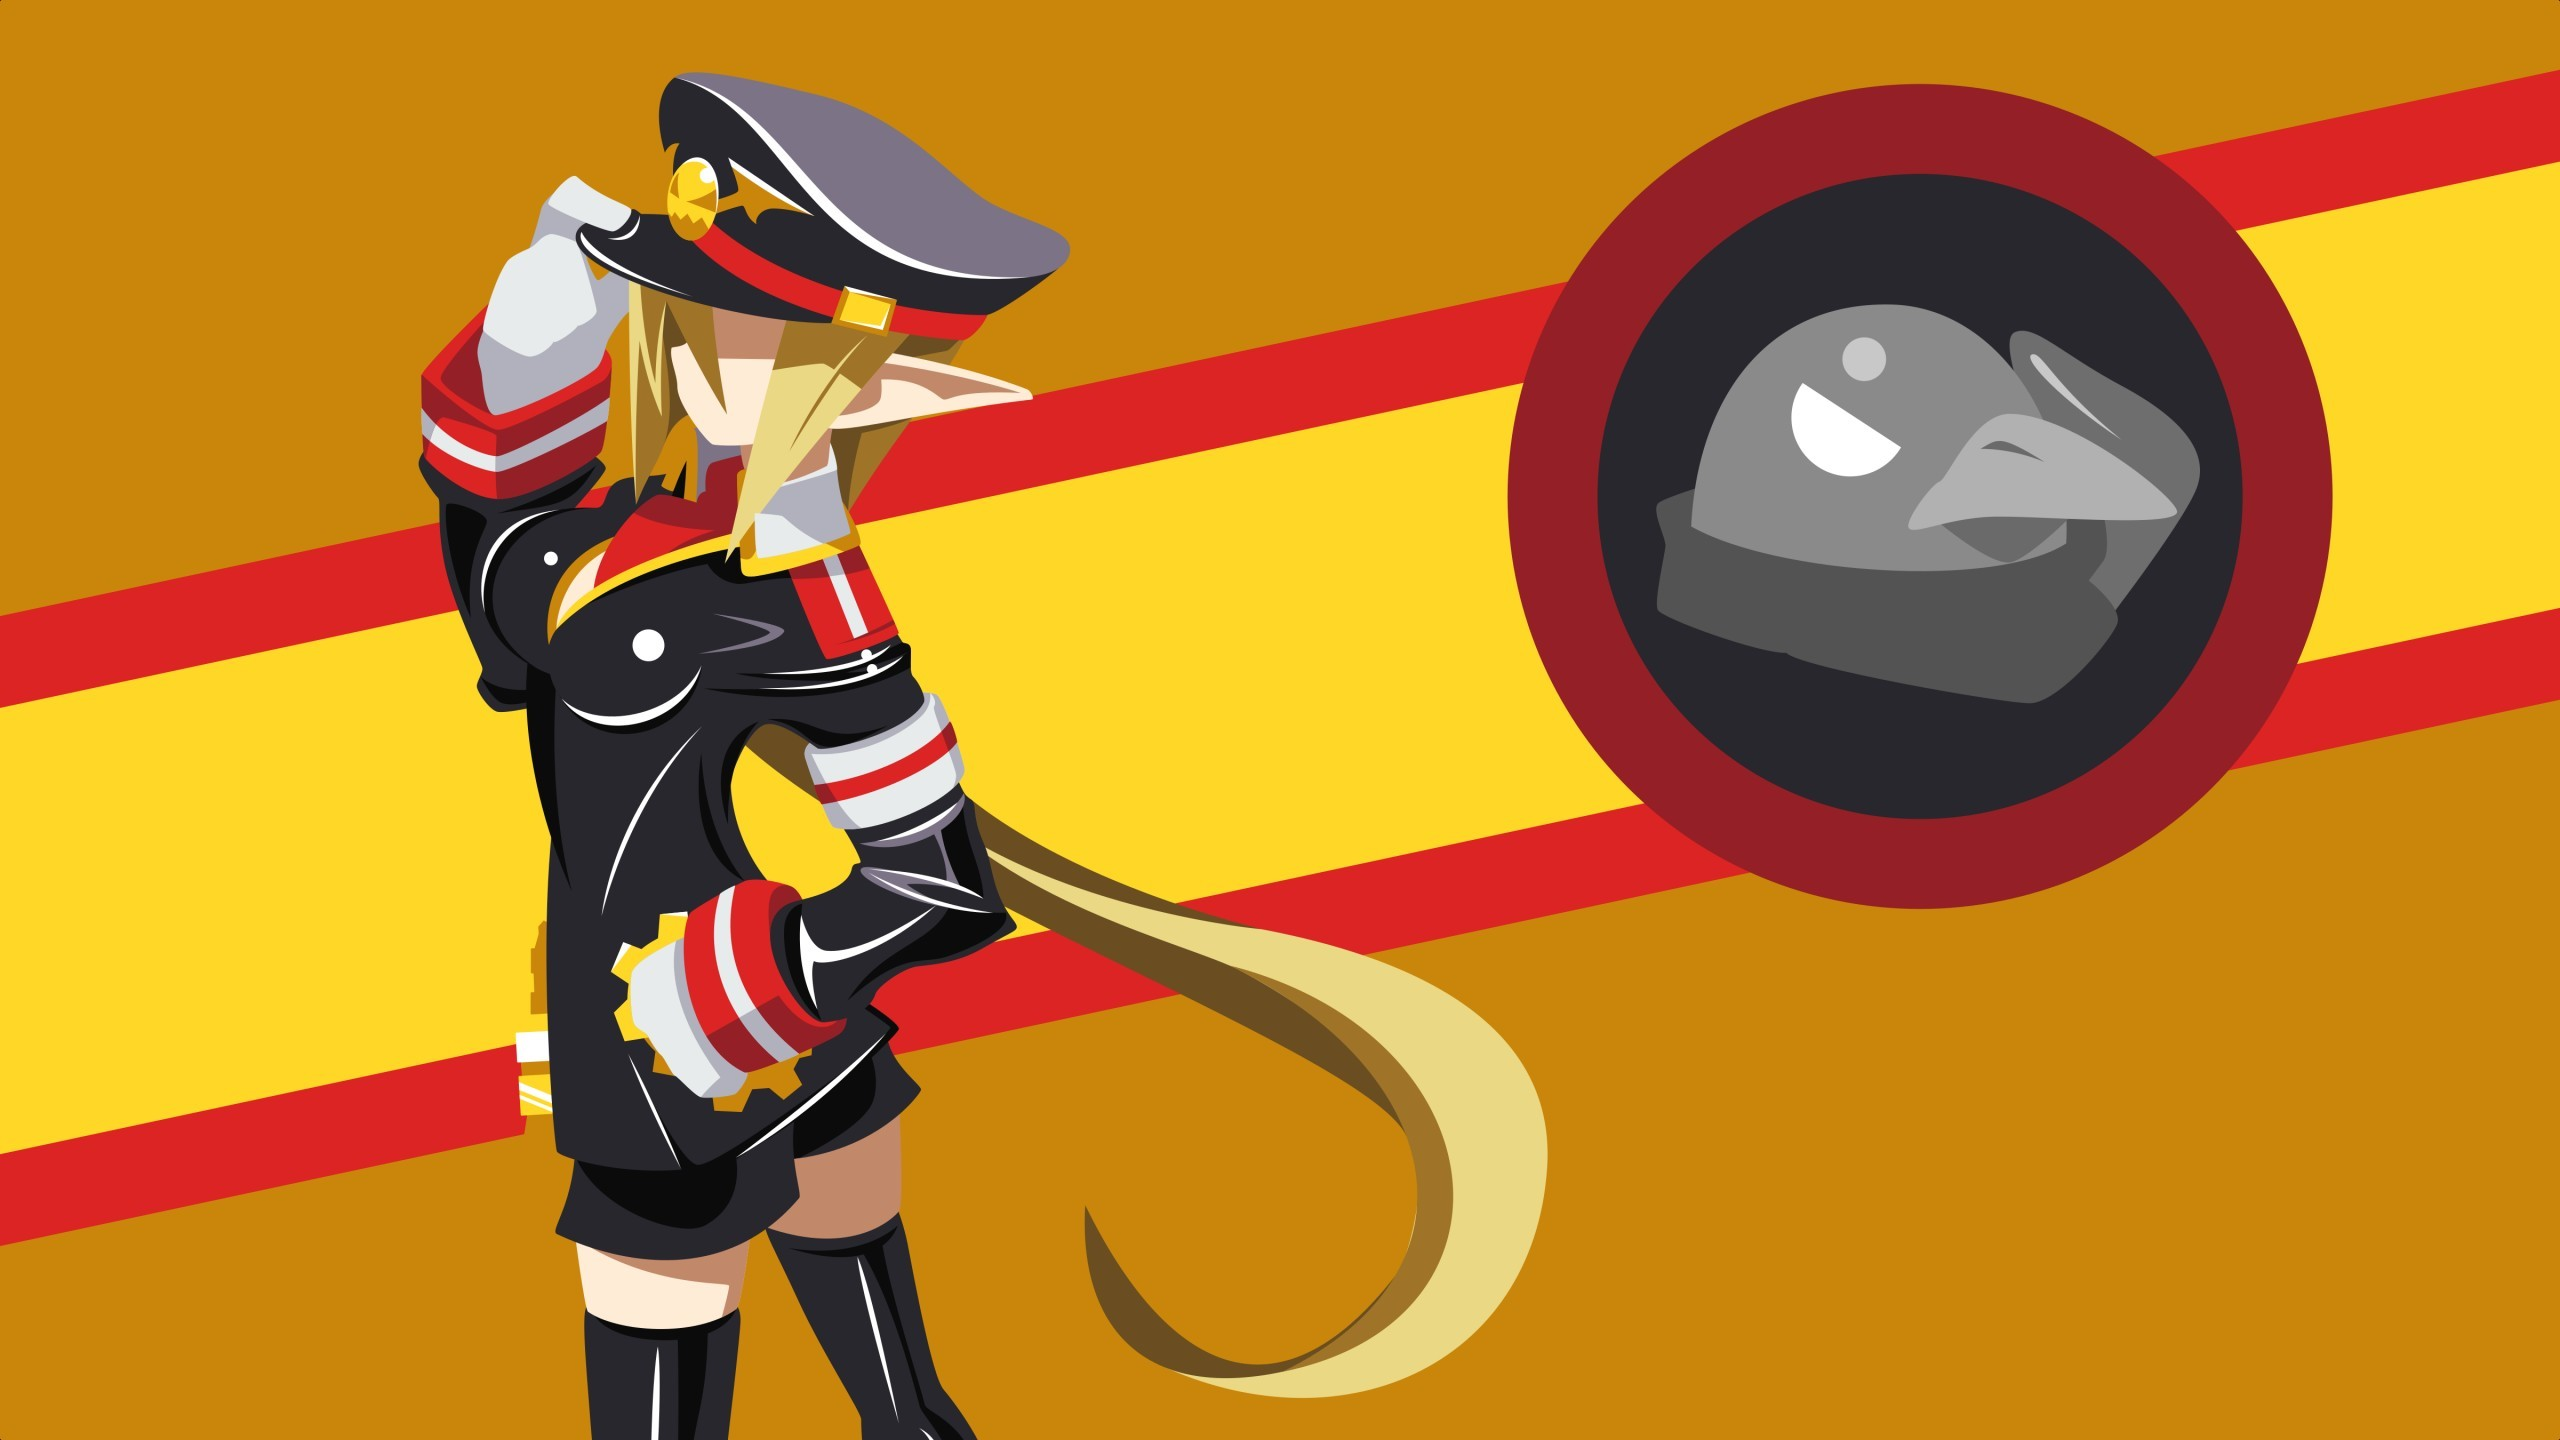 Res: 2560x1440, Salvatore - Disgaea wallpaper by Carionto Salvatore - Disgaea wallpaper by  Carionto